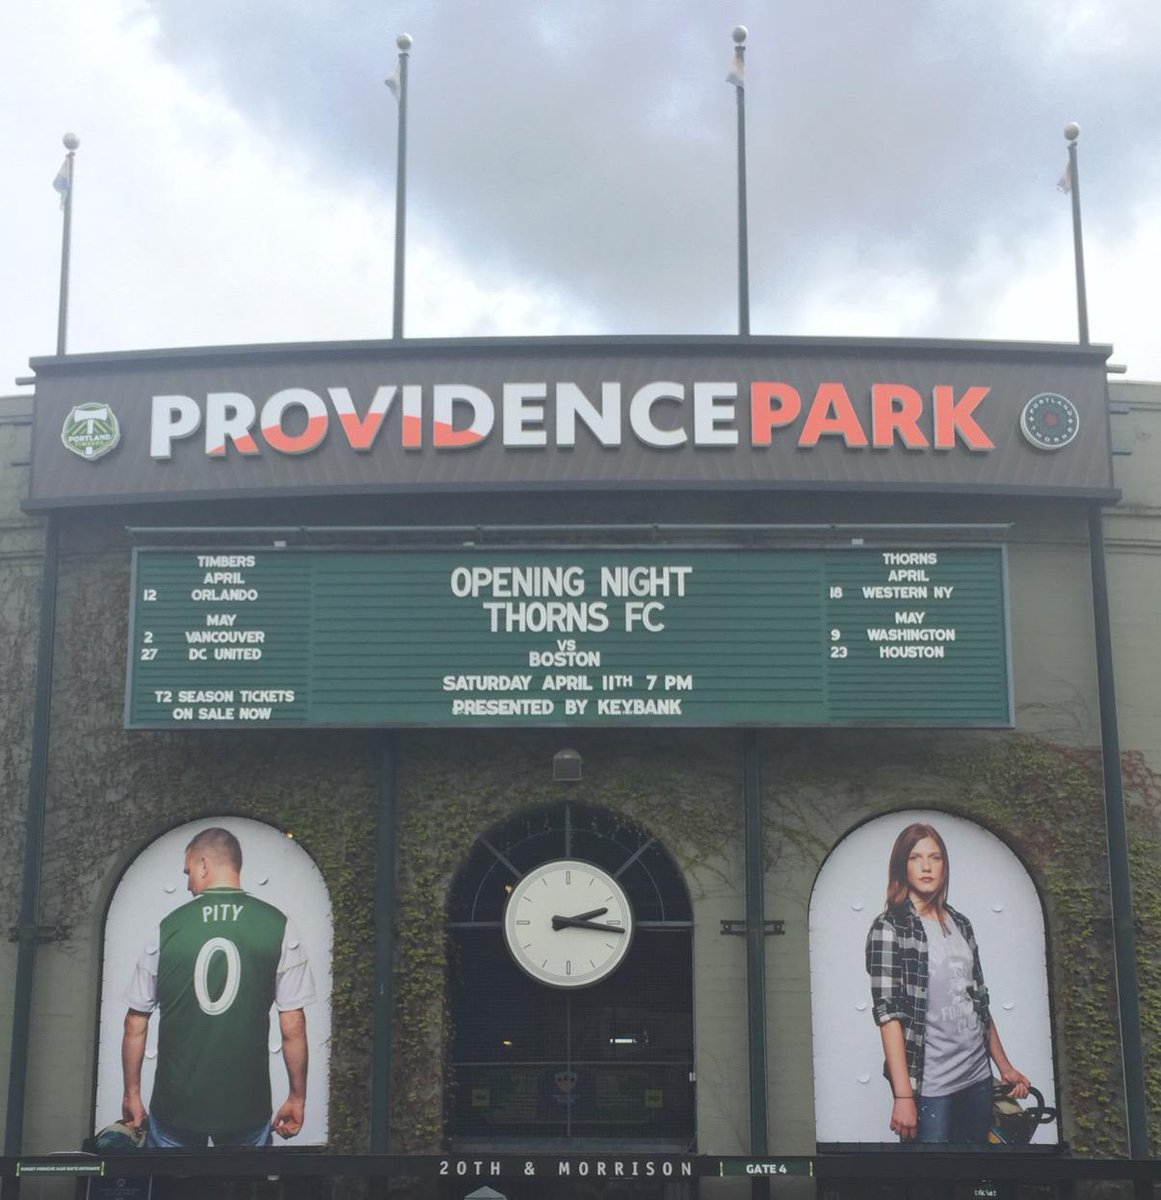 Our turn! @NWSL Opening Night!!! @ThornsFC #Portland #Thorns #PDX #BAONPDX #Thorns #NWSL #RoseCity http://t.co/PYwSRg83HO